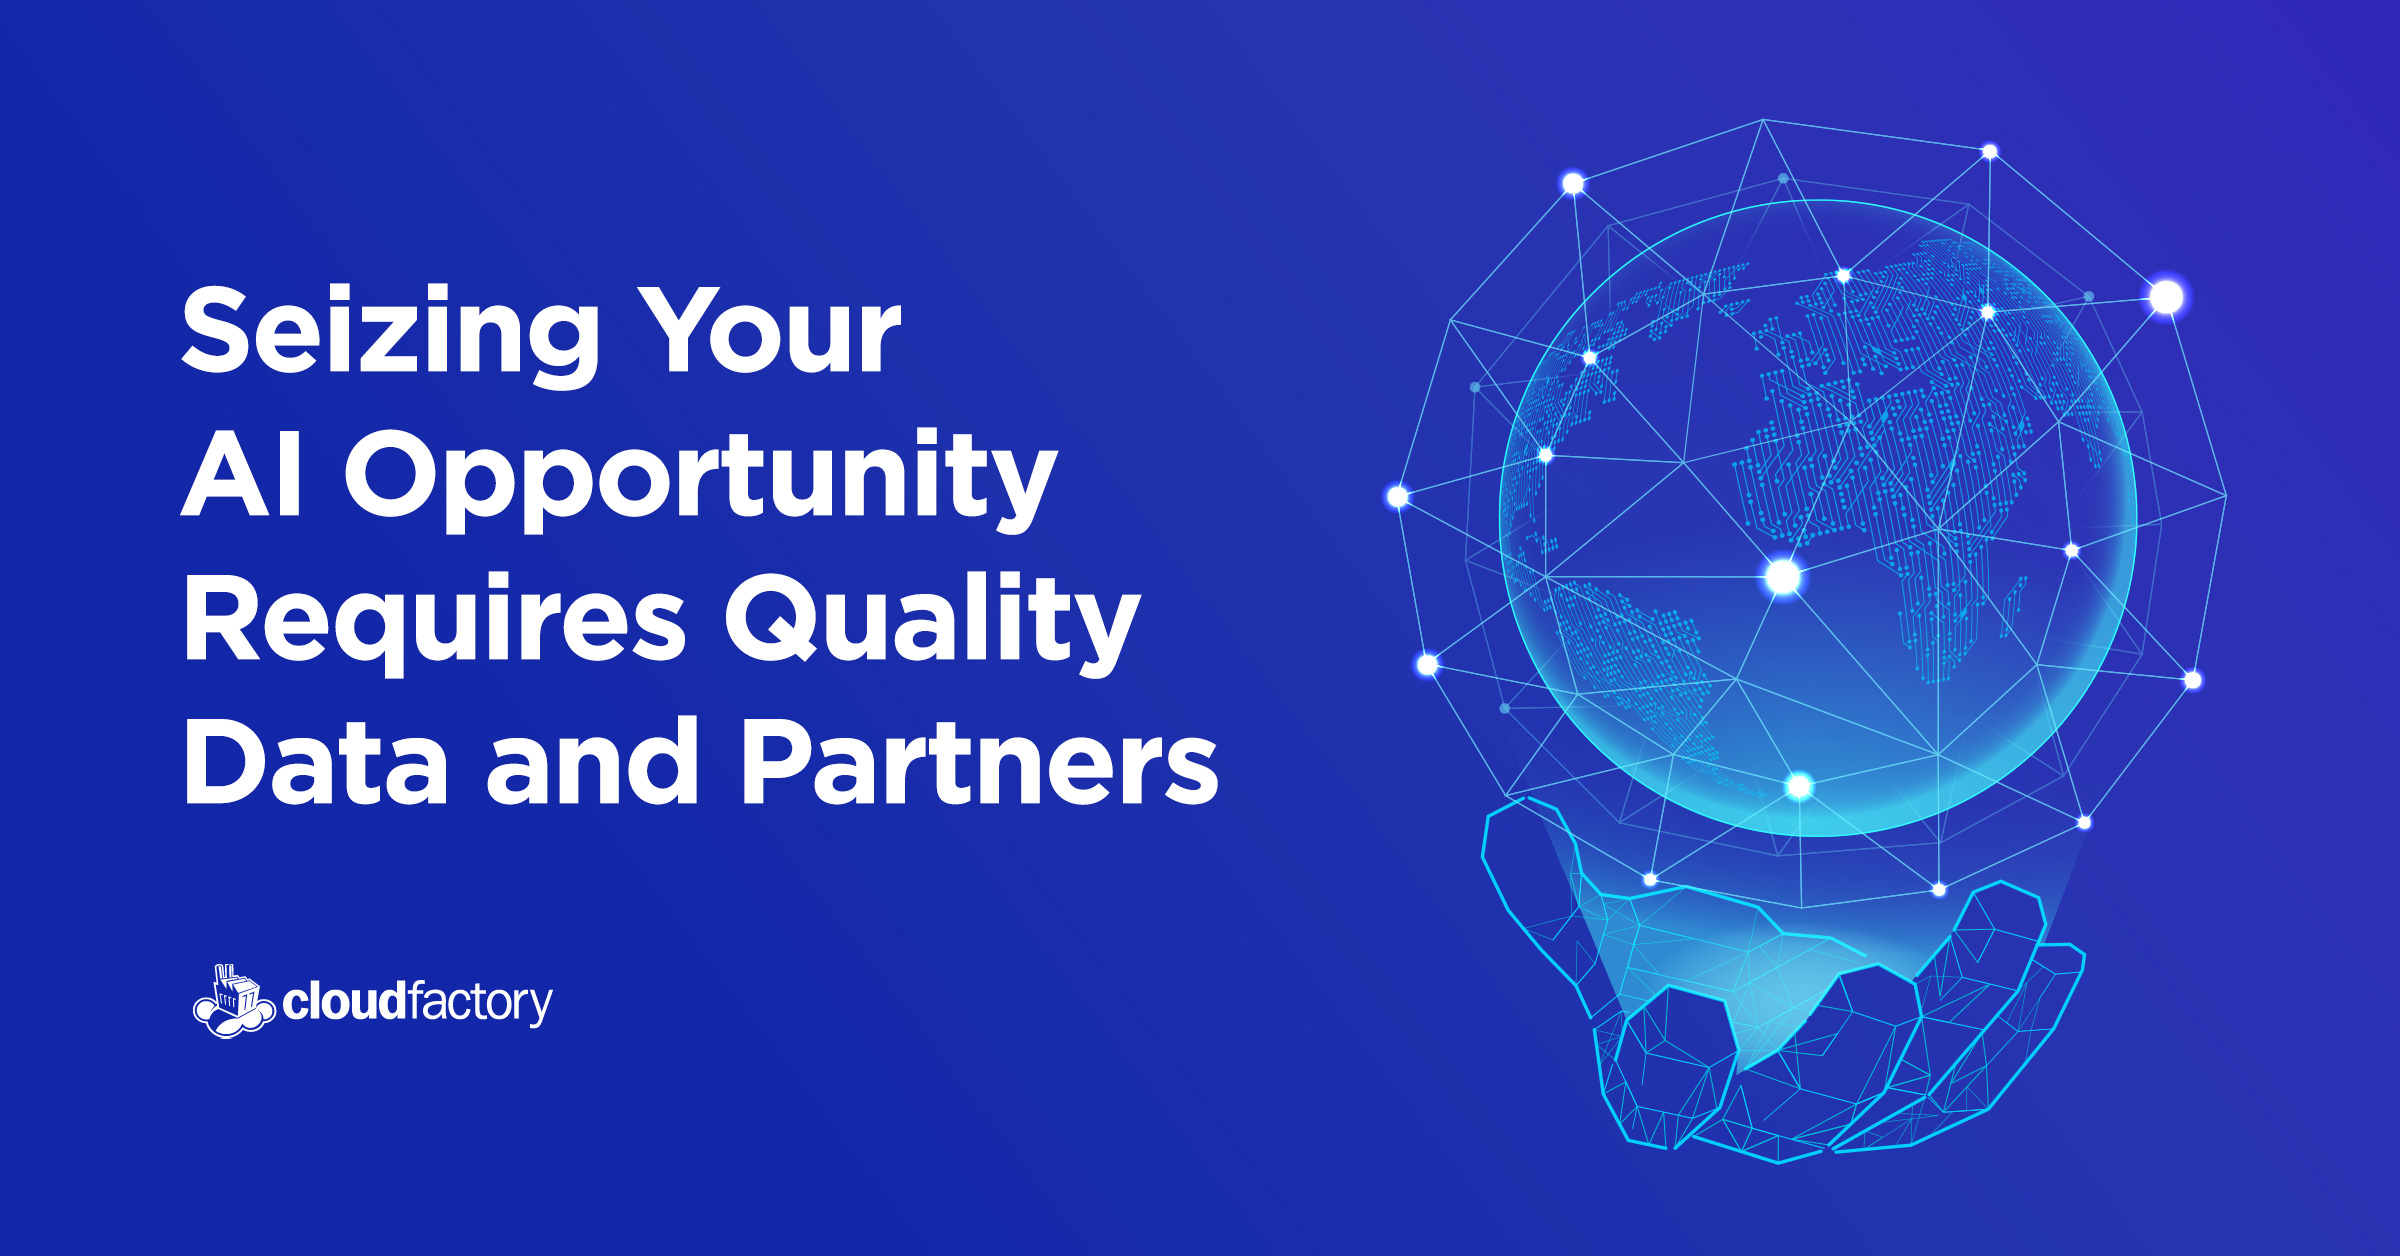 Seizing Your AI Opportunity Requires Quality Data and Partners